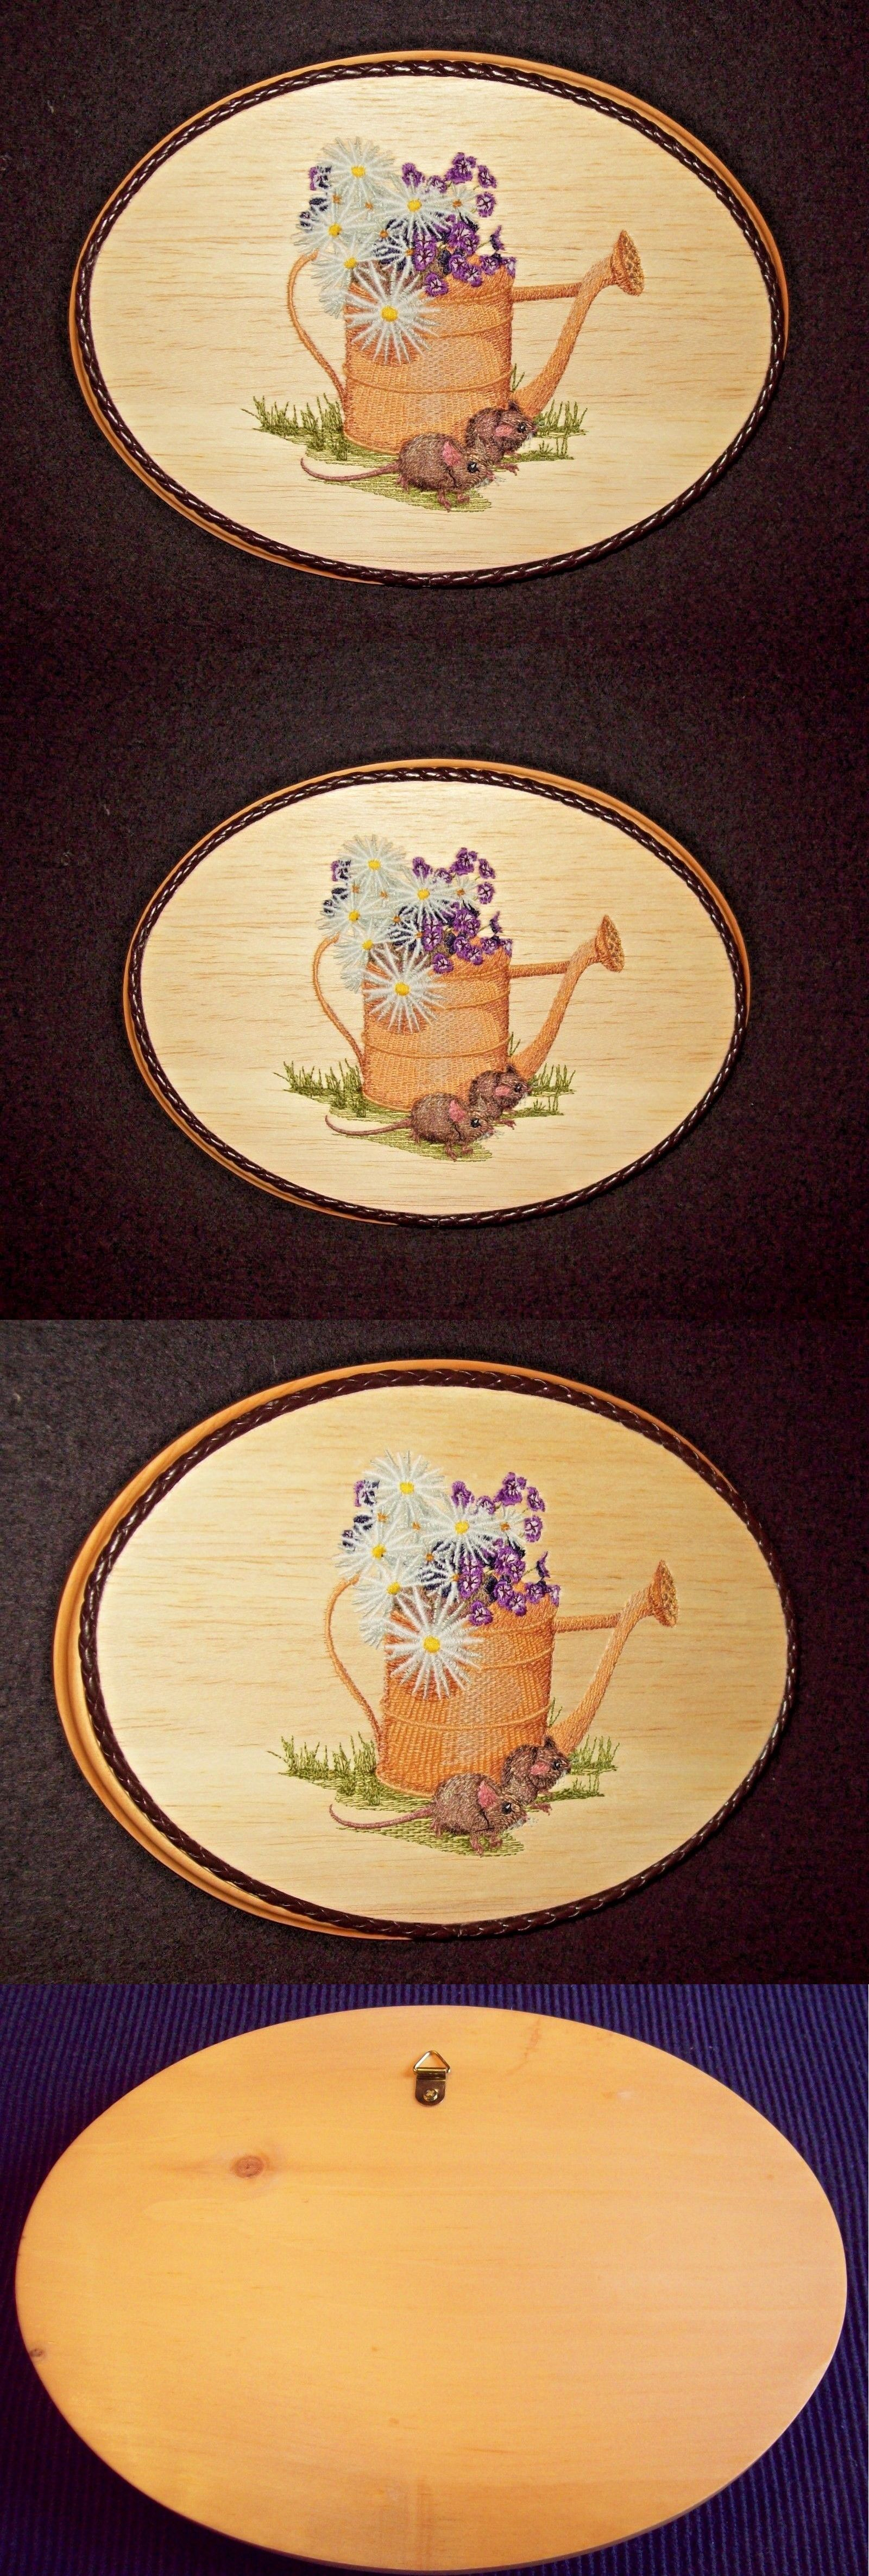 Wall Hangings 83904: Garden Watering Can Scenic Wall Decor Multi ...